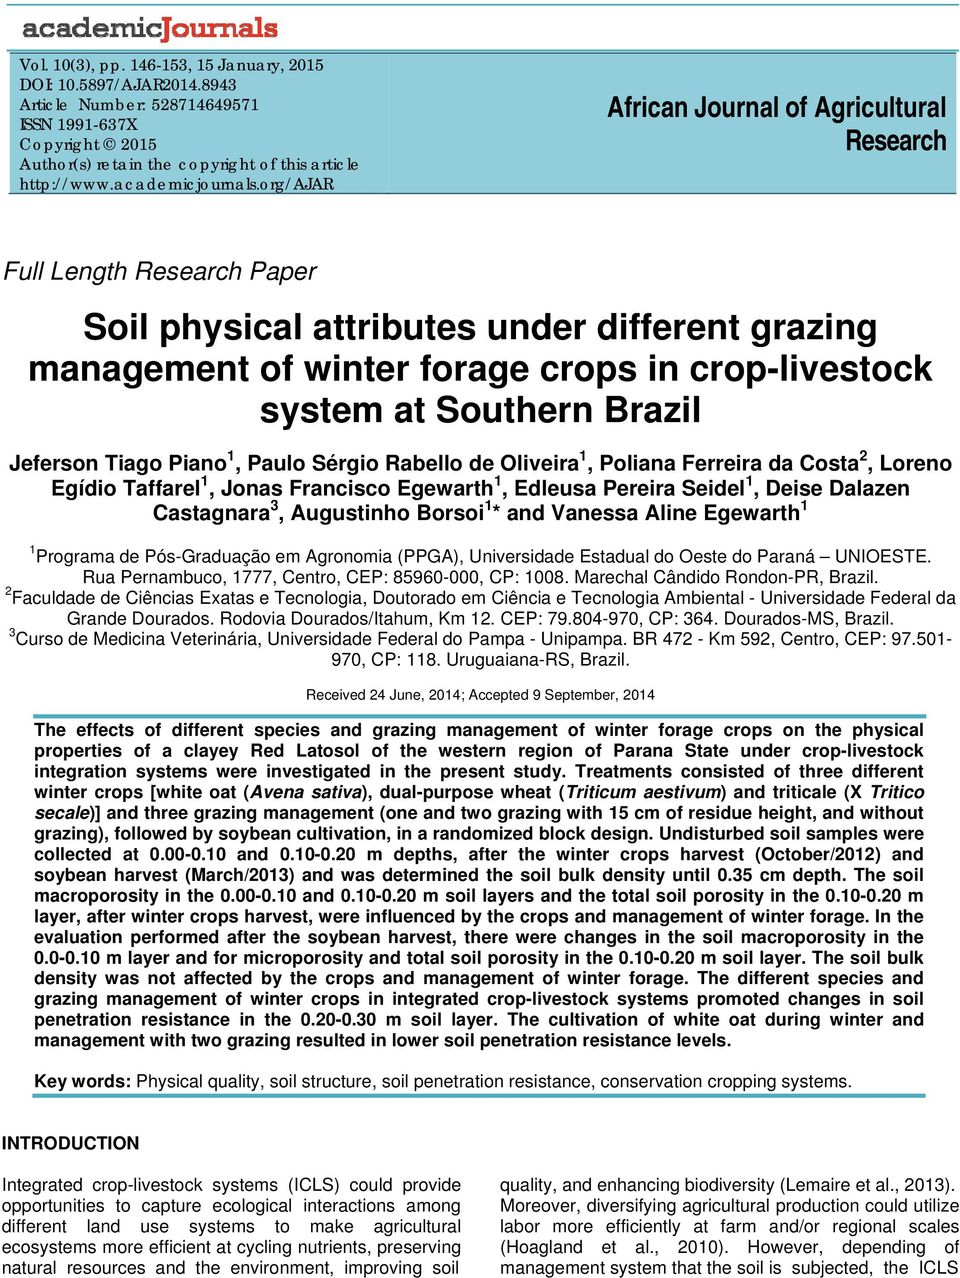 org/ajar African Journal of Agricultural Research Full Length Research Paper Soil physical attributes under different grazing management of winter forage crops in crop-livestock system at Southern